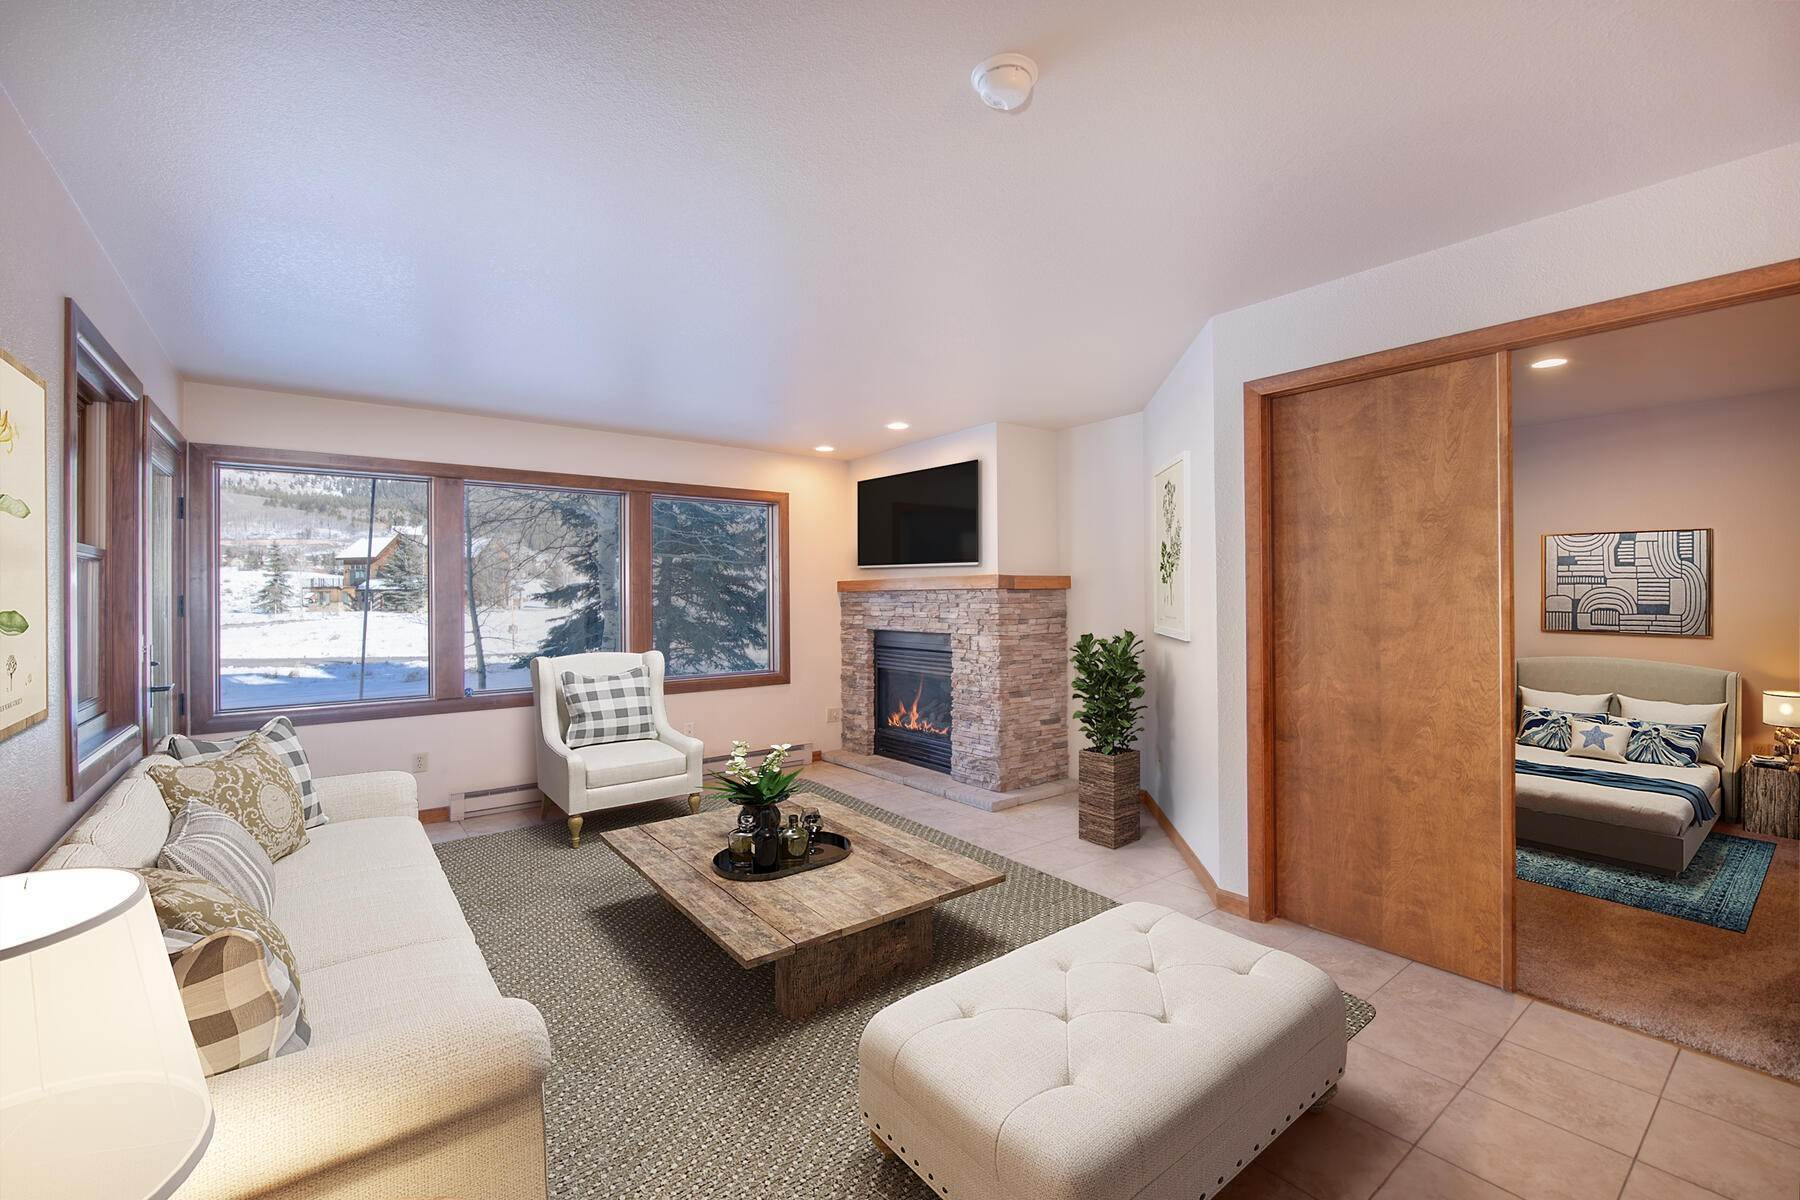 Condominiums for Active at Beautiful, Bright Ground-Floor 2-Bedroom Unit 251 Slate River Drive, Unit 2 Crested Butte, Colorado 81224 United States